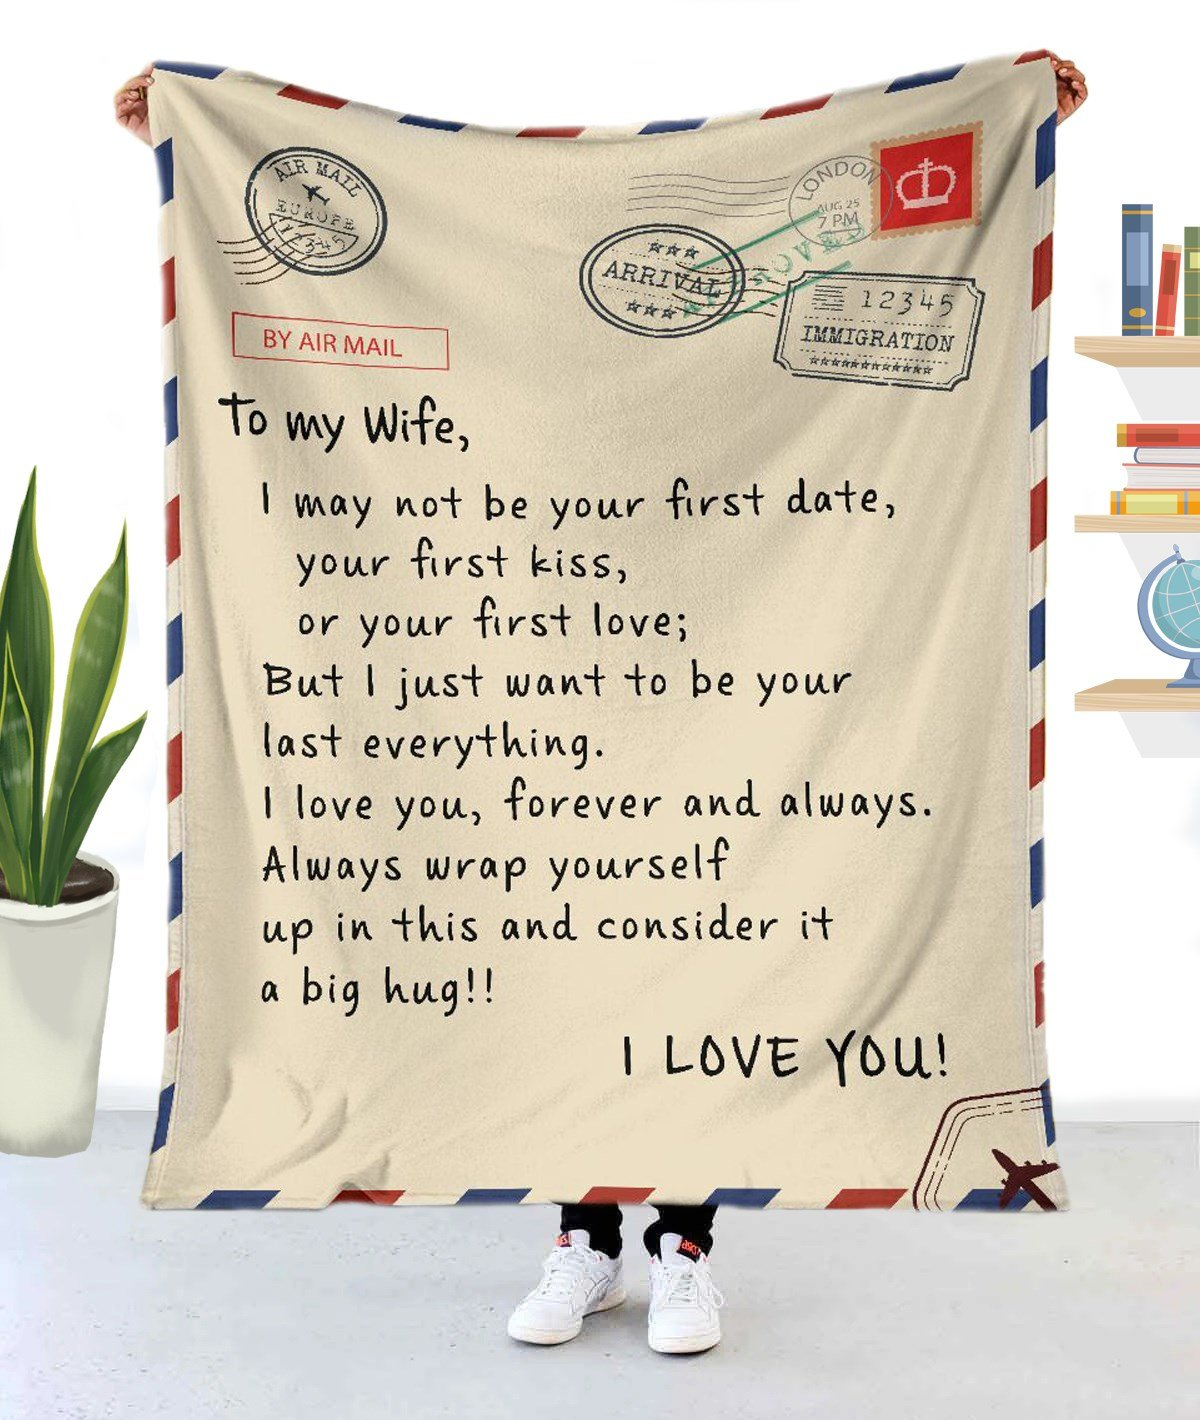 To my wife - I love you message blanket HG7900-HG-XLARGE-Vibe Cosy™